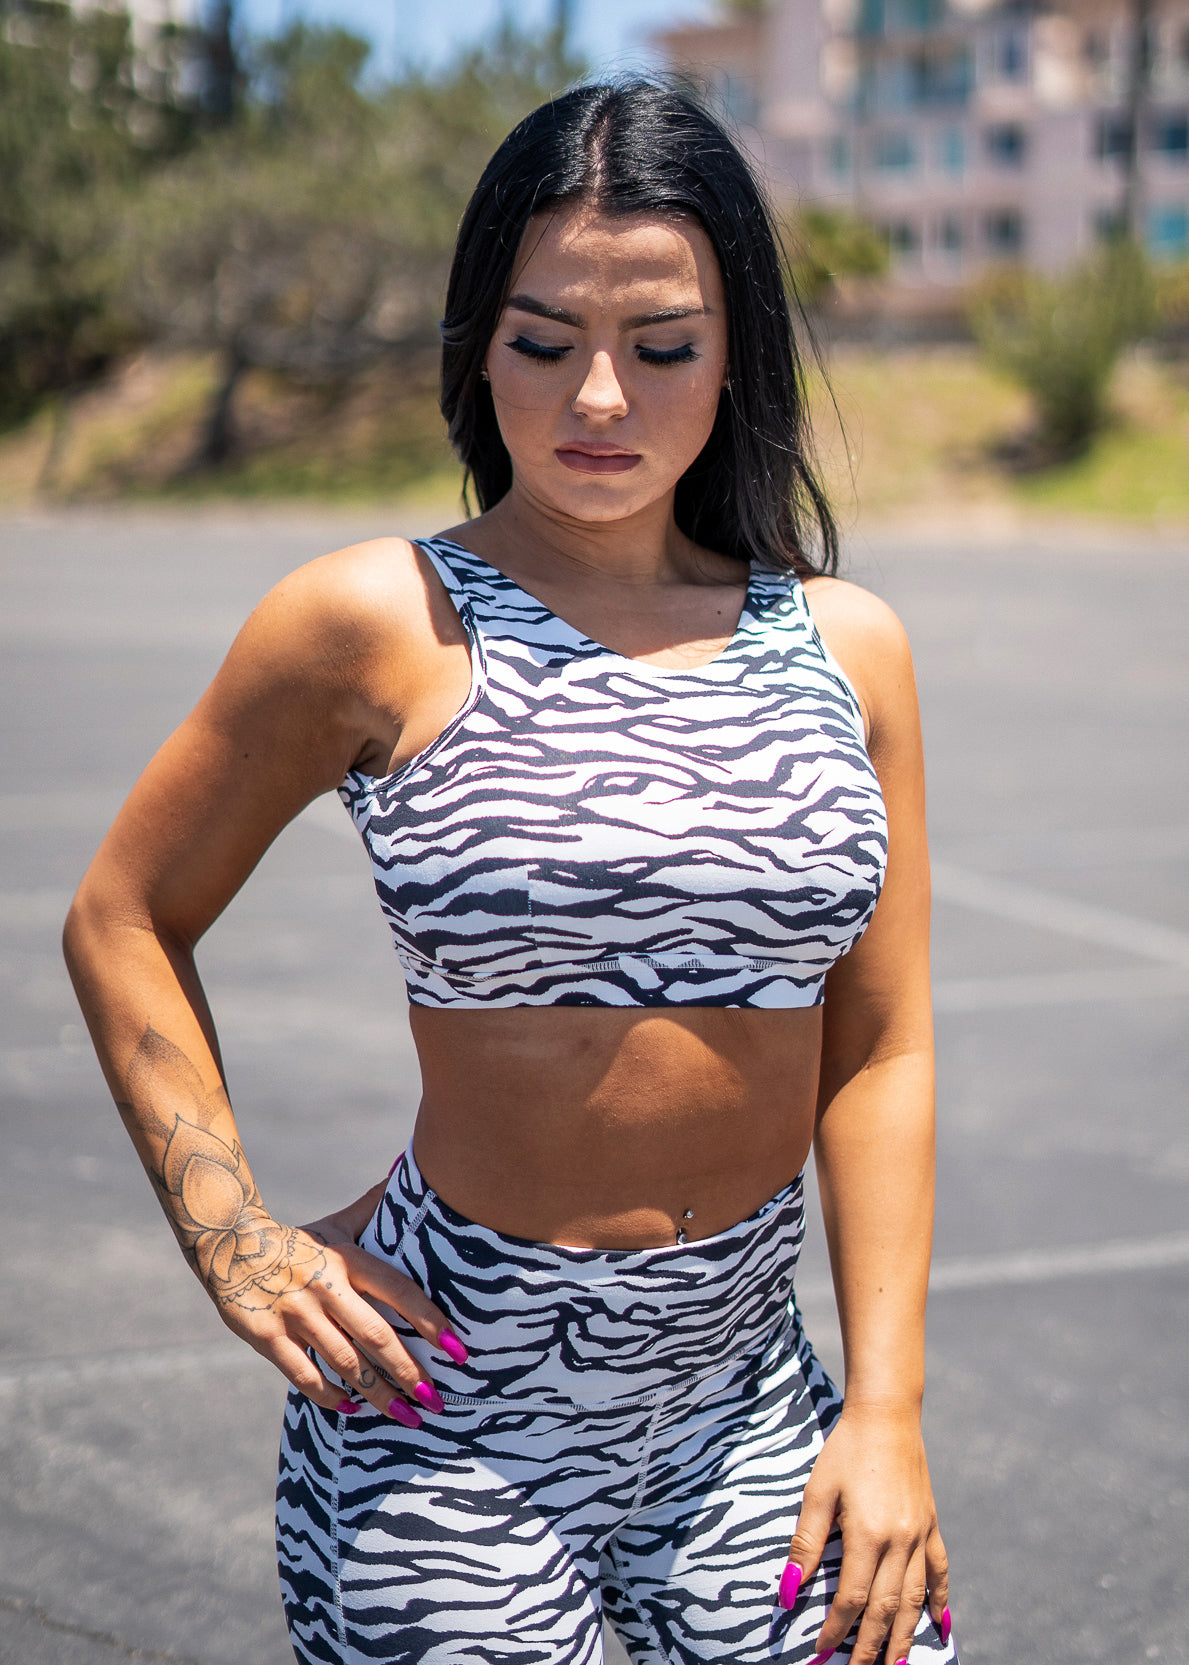 Zebra Print Strap Back Sports Bra